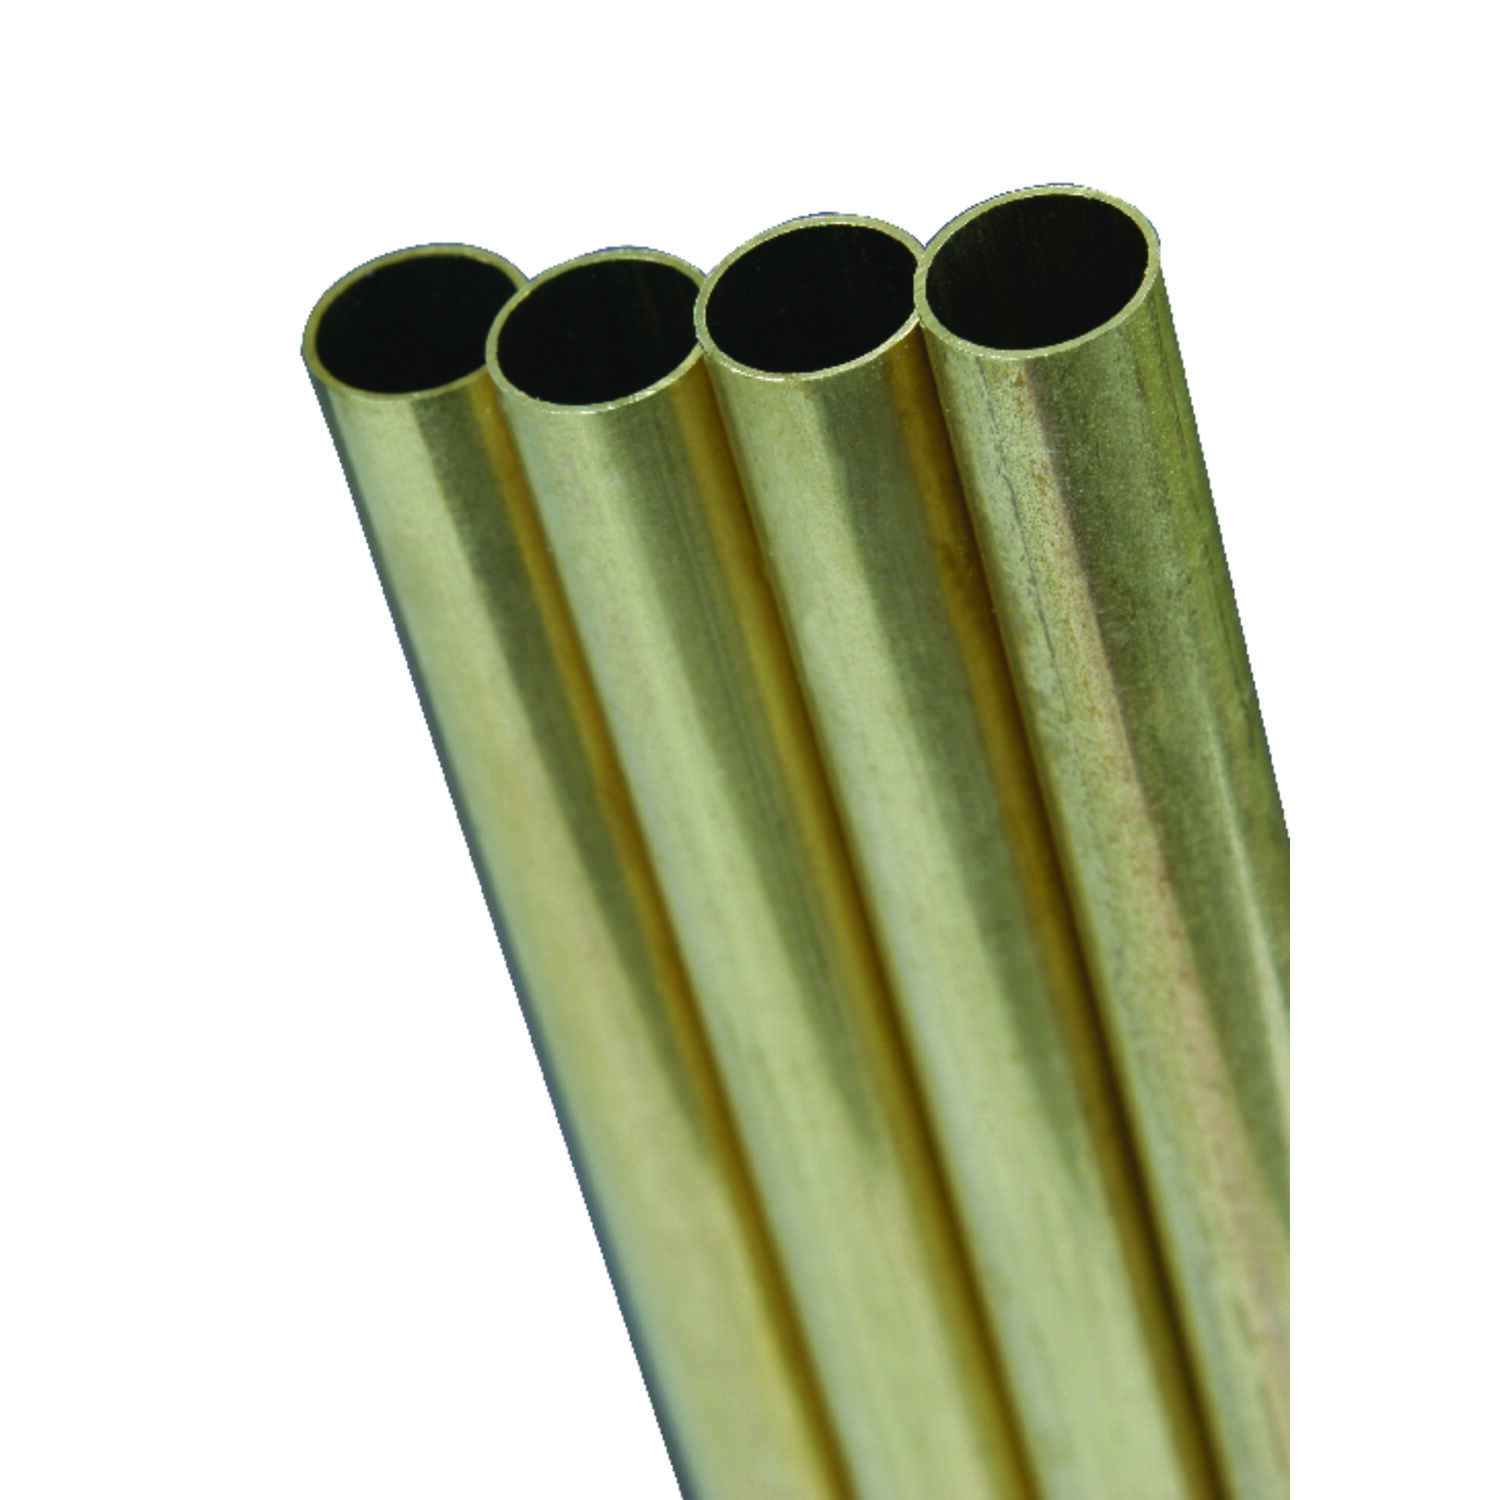 K&S  3/8 in. Dia. x 12 in. L Round  Brass Tube  1 pk